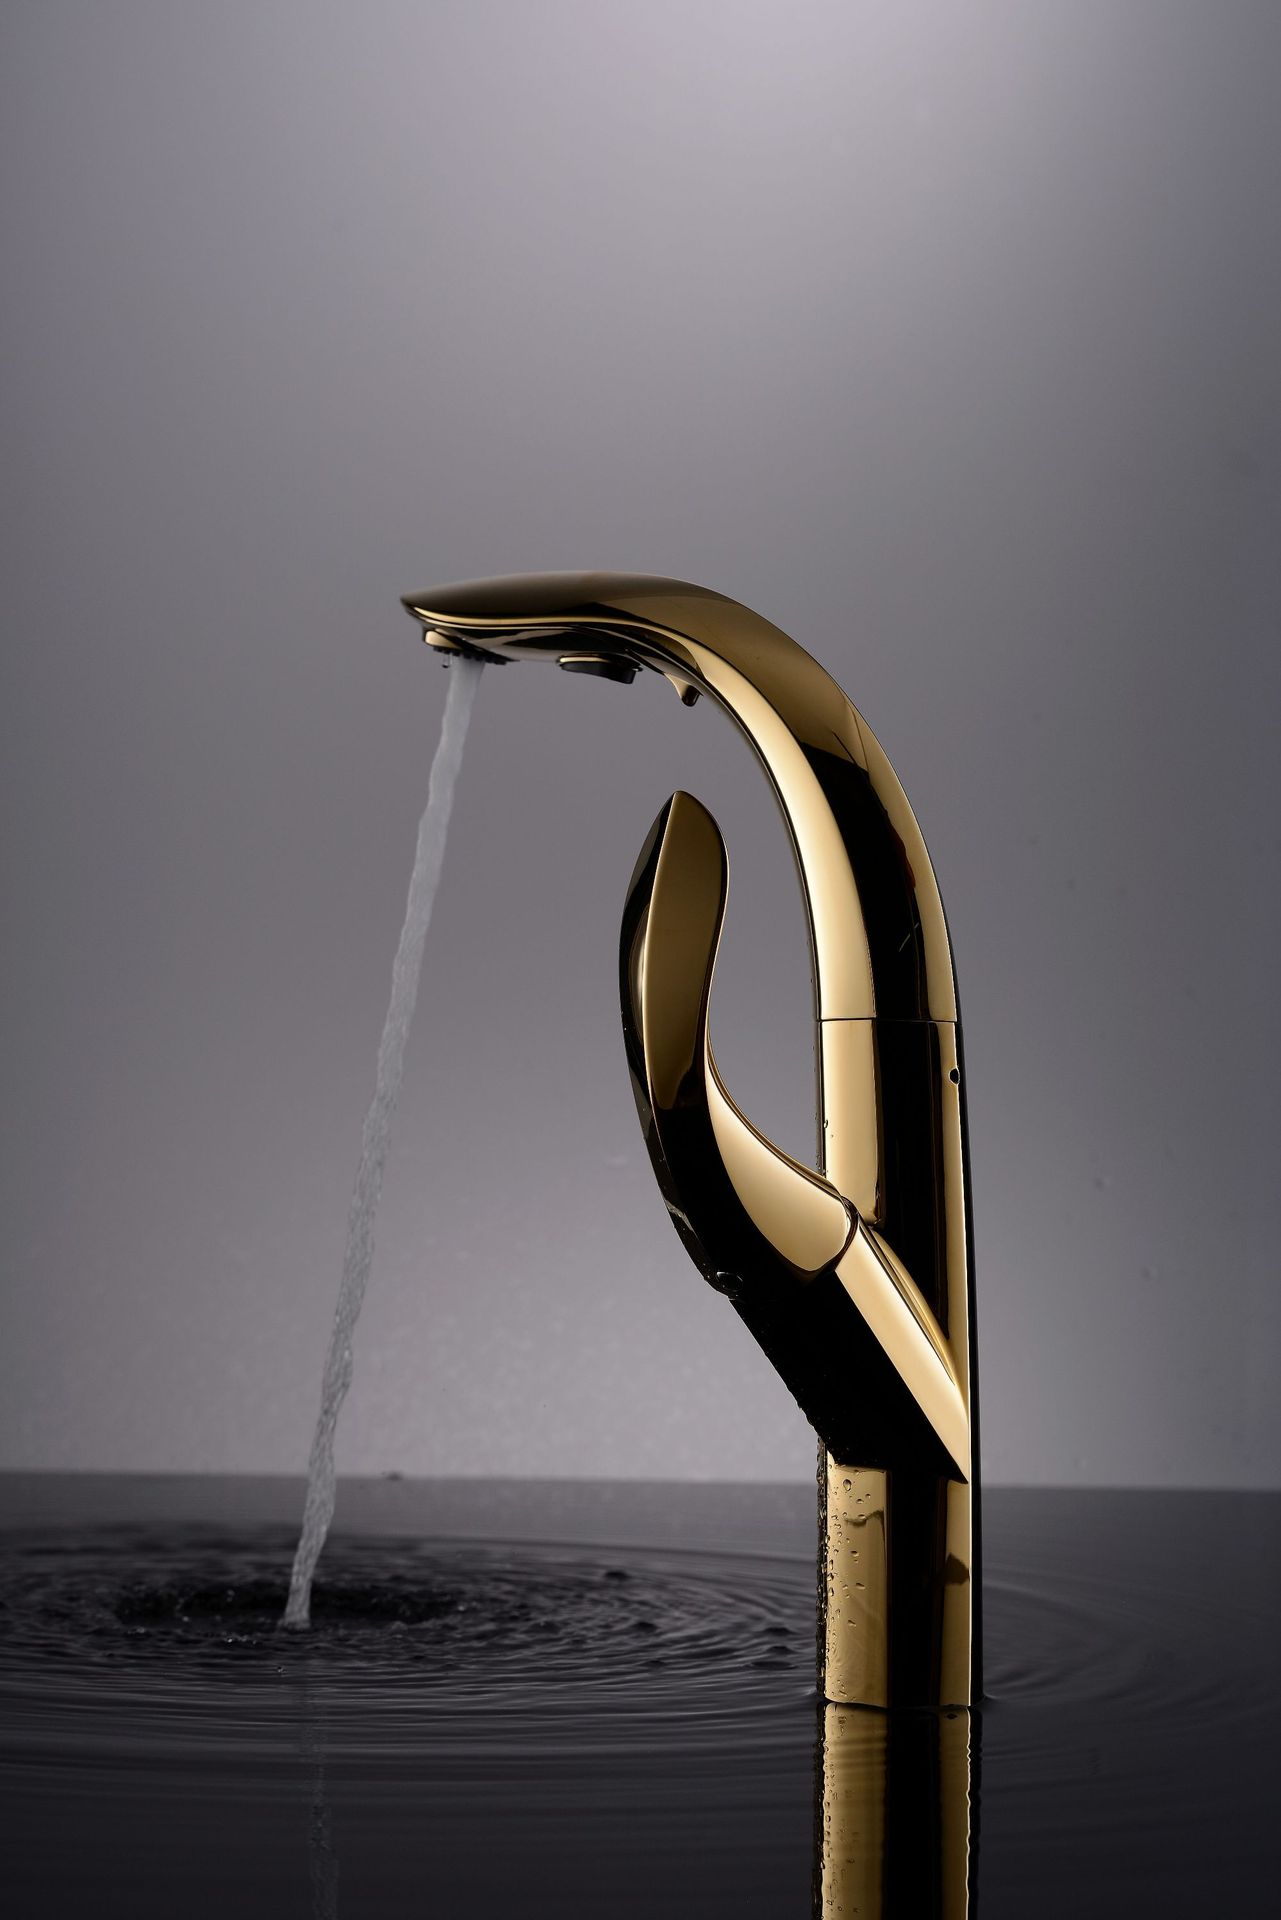 Dofaso Gold Faucet Luxury Design European-Style Faucet Quality Pulling Hot And Cold Water Mixing Golden Kitchen Faucet